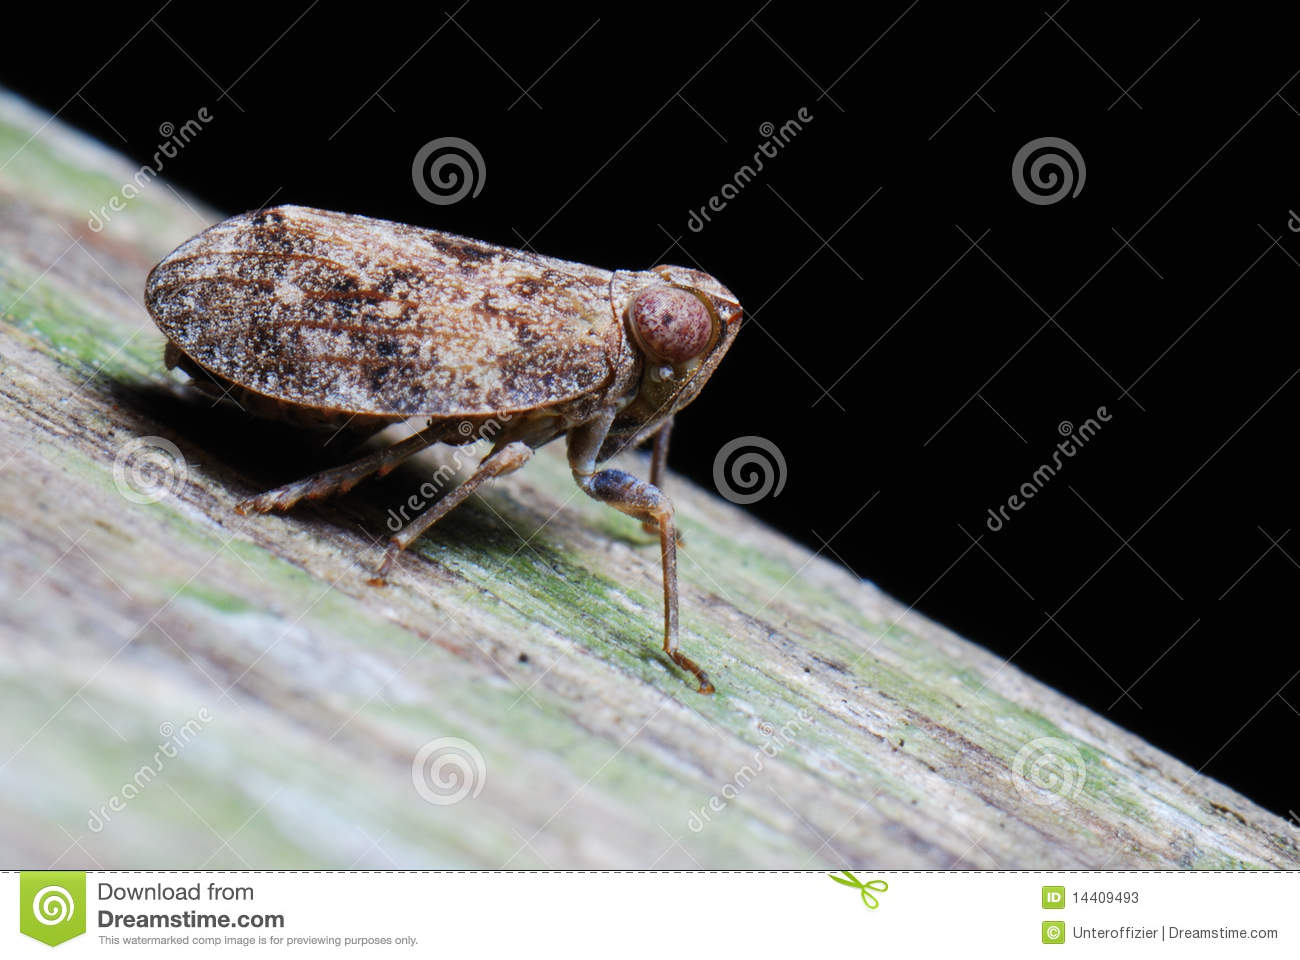 Planthopper clipart #8, Download drawings